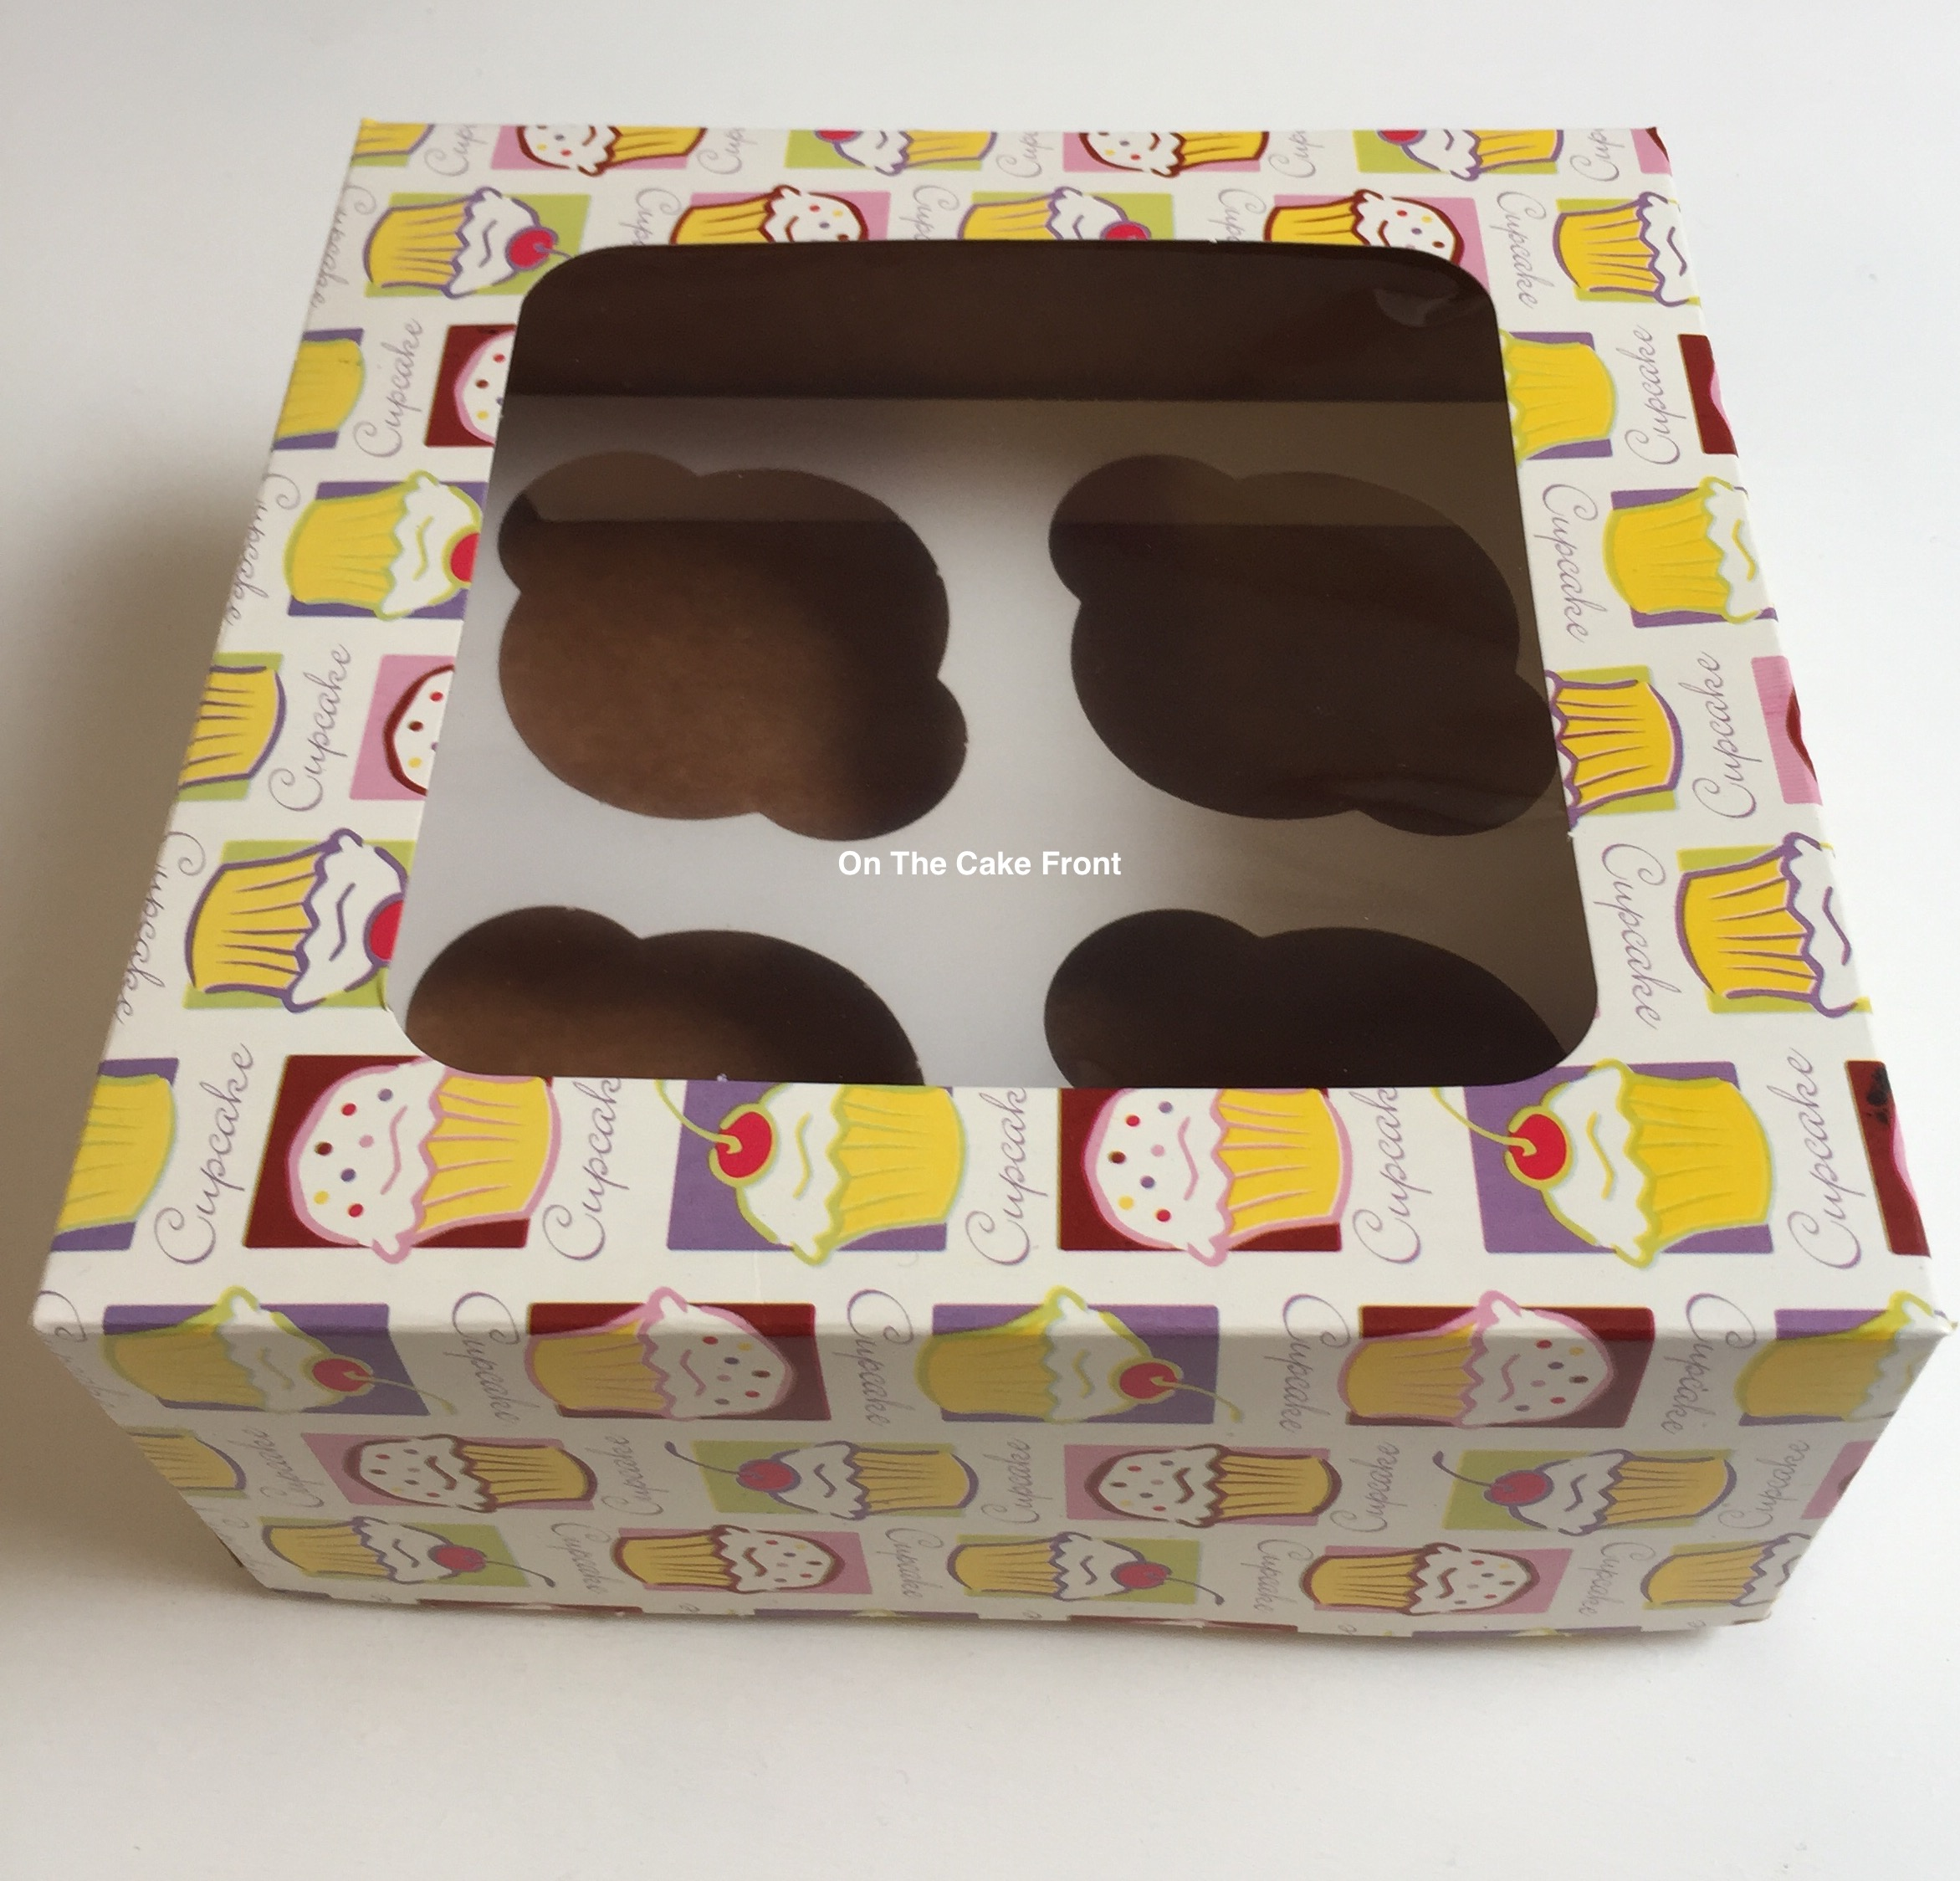 Pattern cupcake design box holds 4 cup cakes